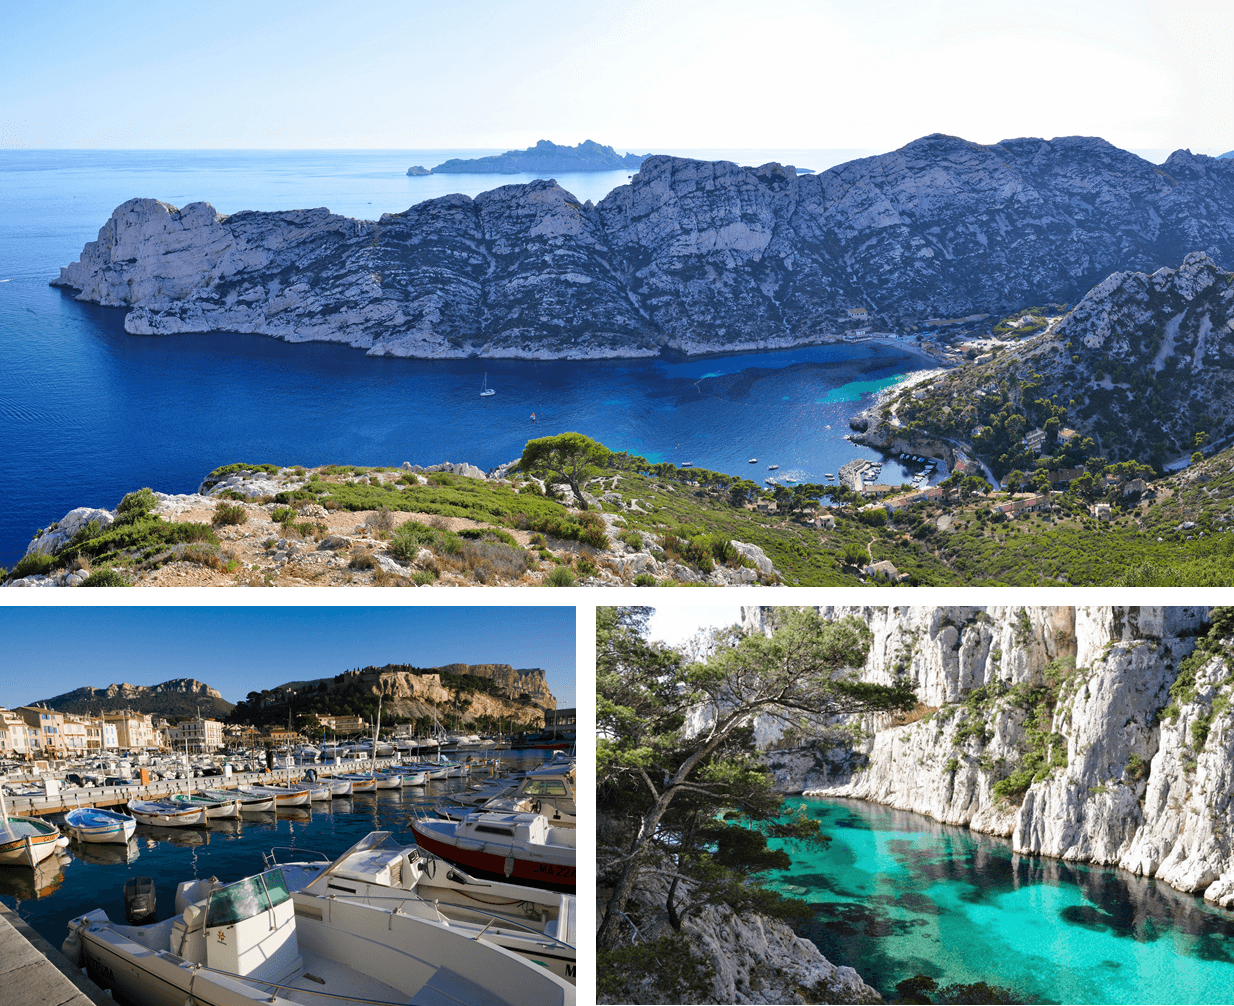 Calanques de Cassis, provence, sea, ocean, port